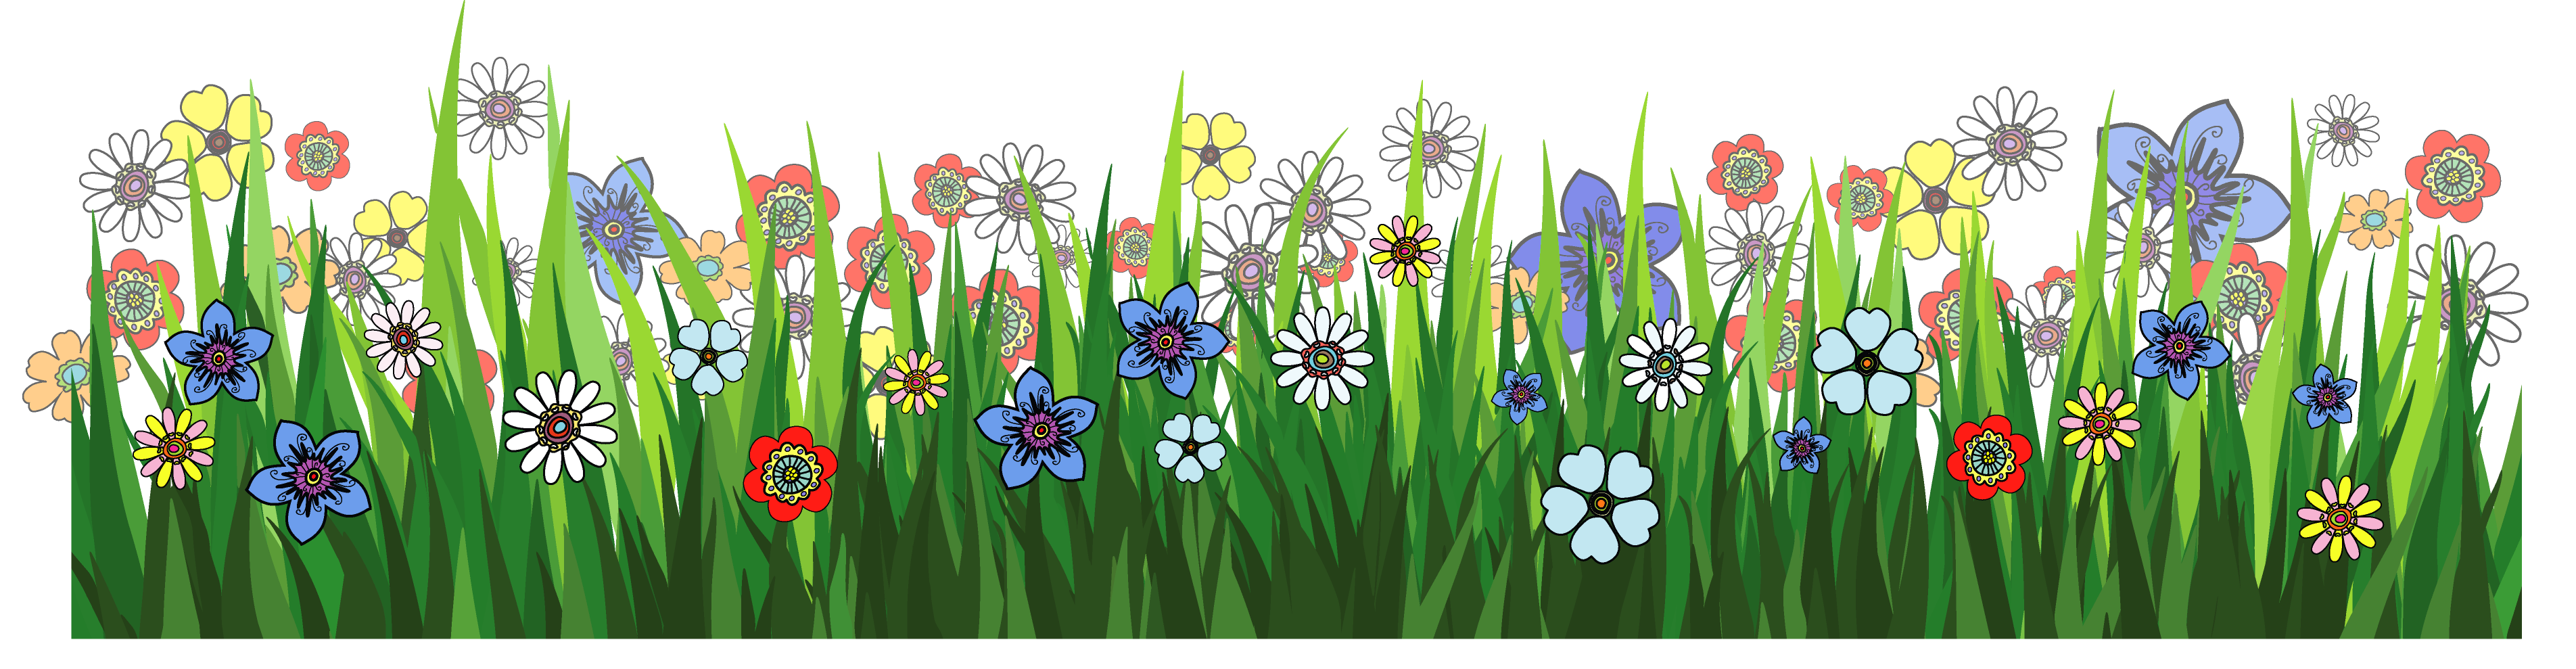 Clip art grass ground. Flower meadow clipart